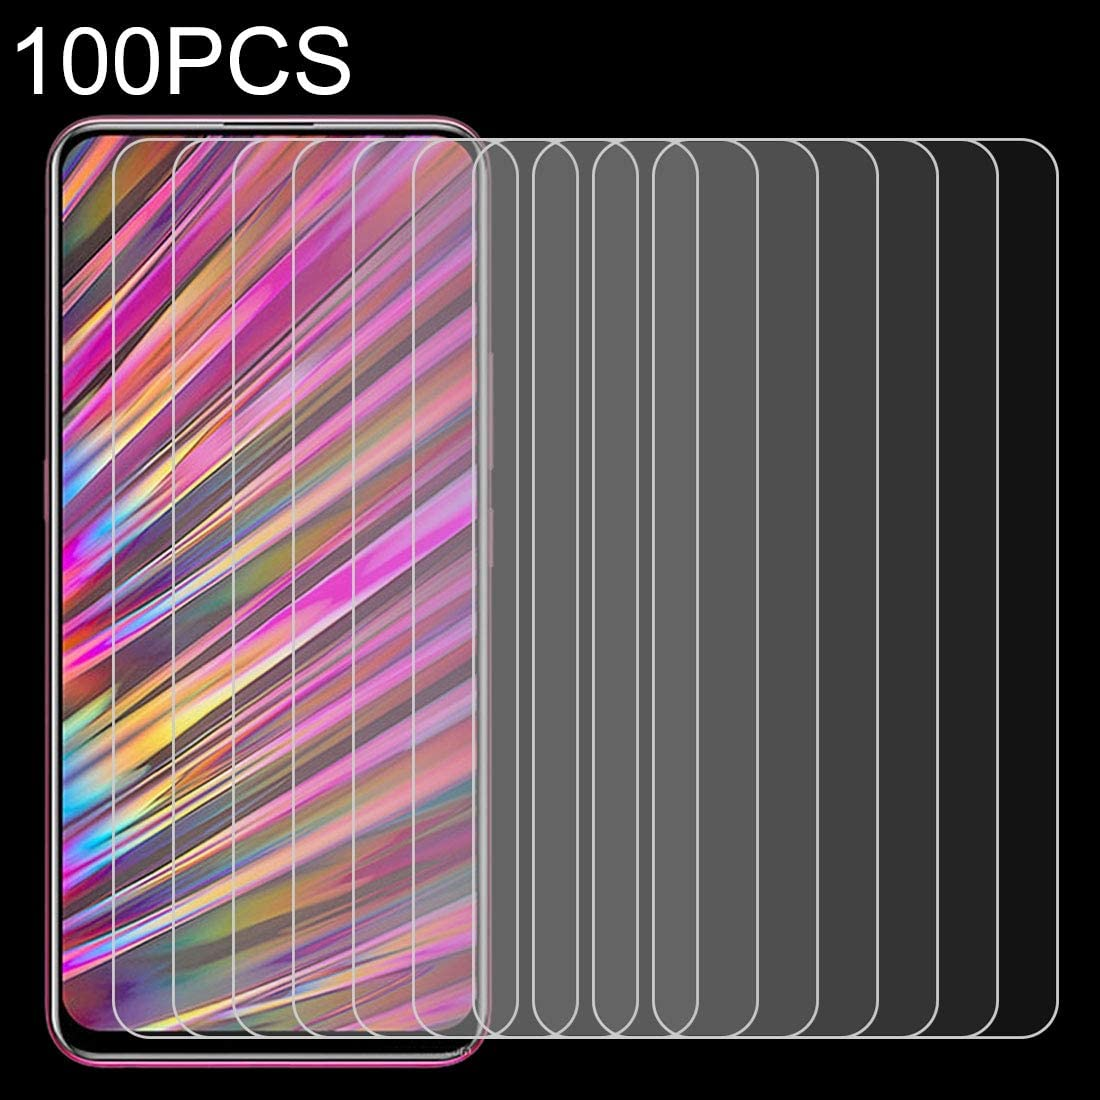 GzPuluz Glass Protector Film 100 PCS 0.26mm 9H 2.5D Tempered Glass Film for Vivo V15